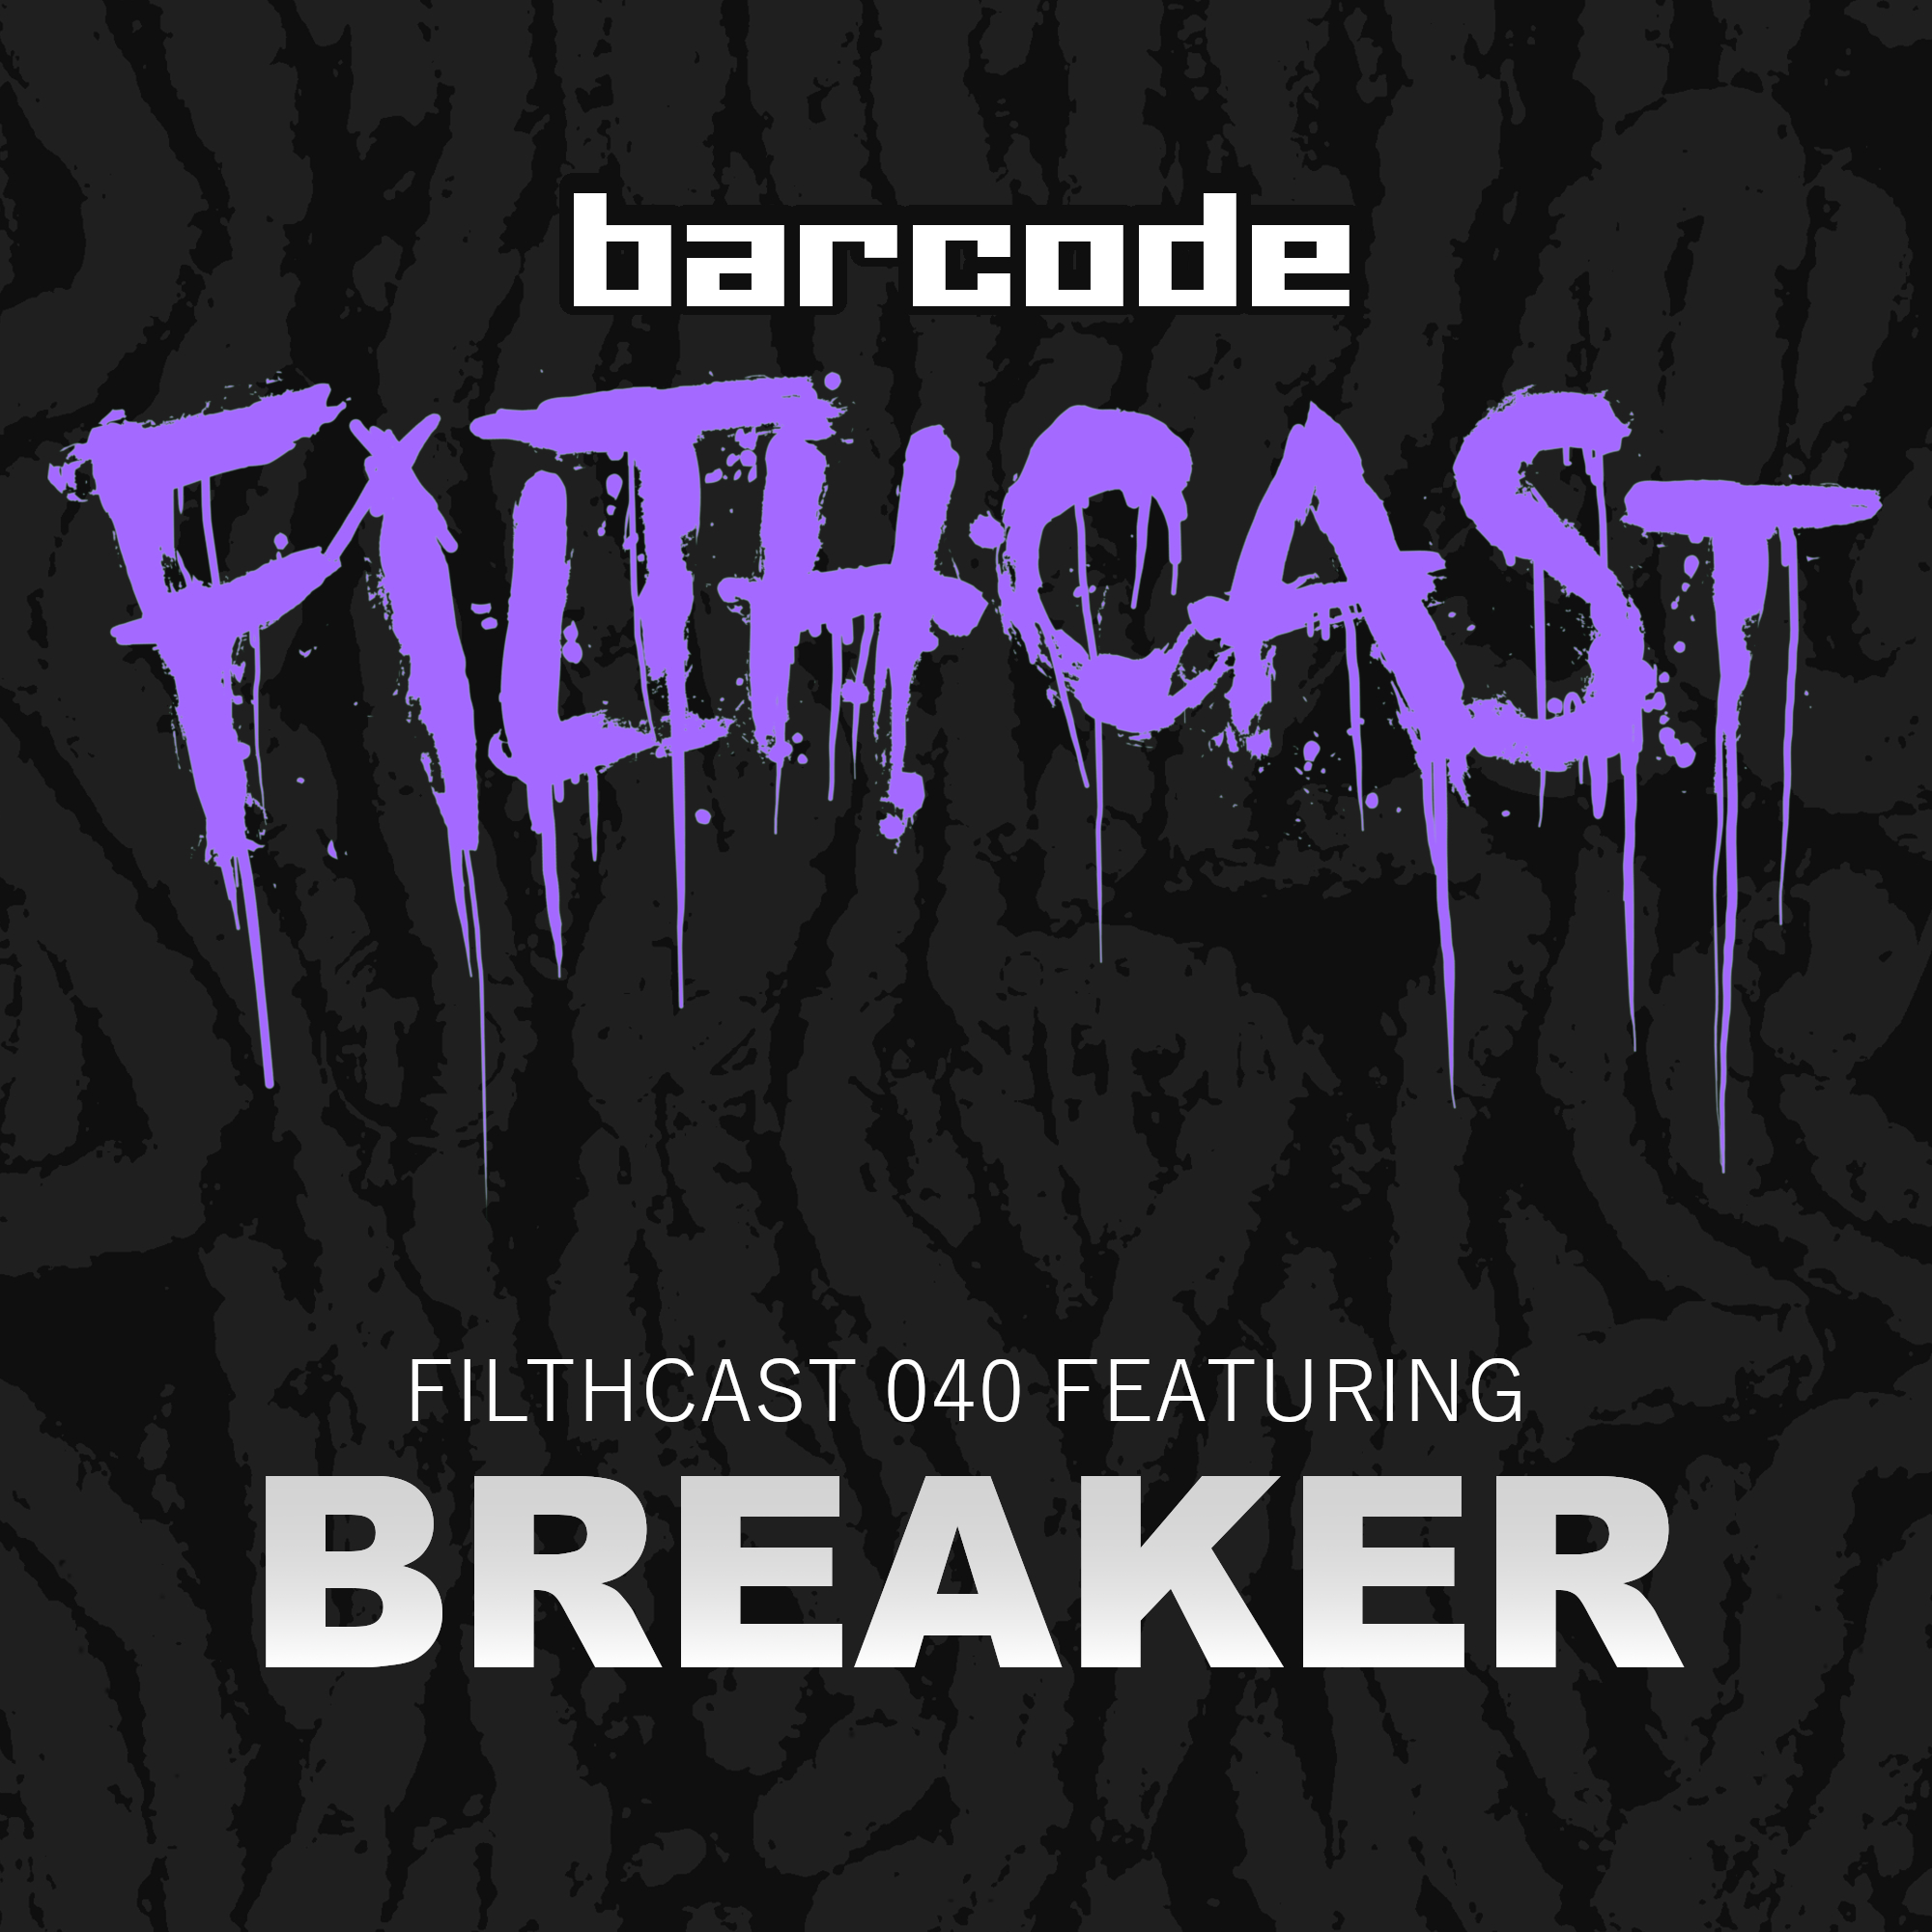 Trick or treat? Treat please! Breaker brings the latest edition of the spooky halloween Filthcast!